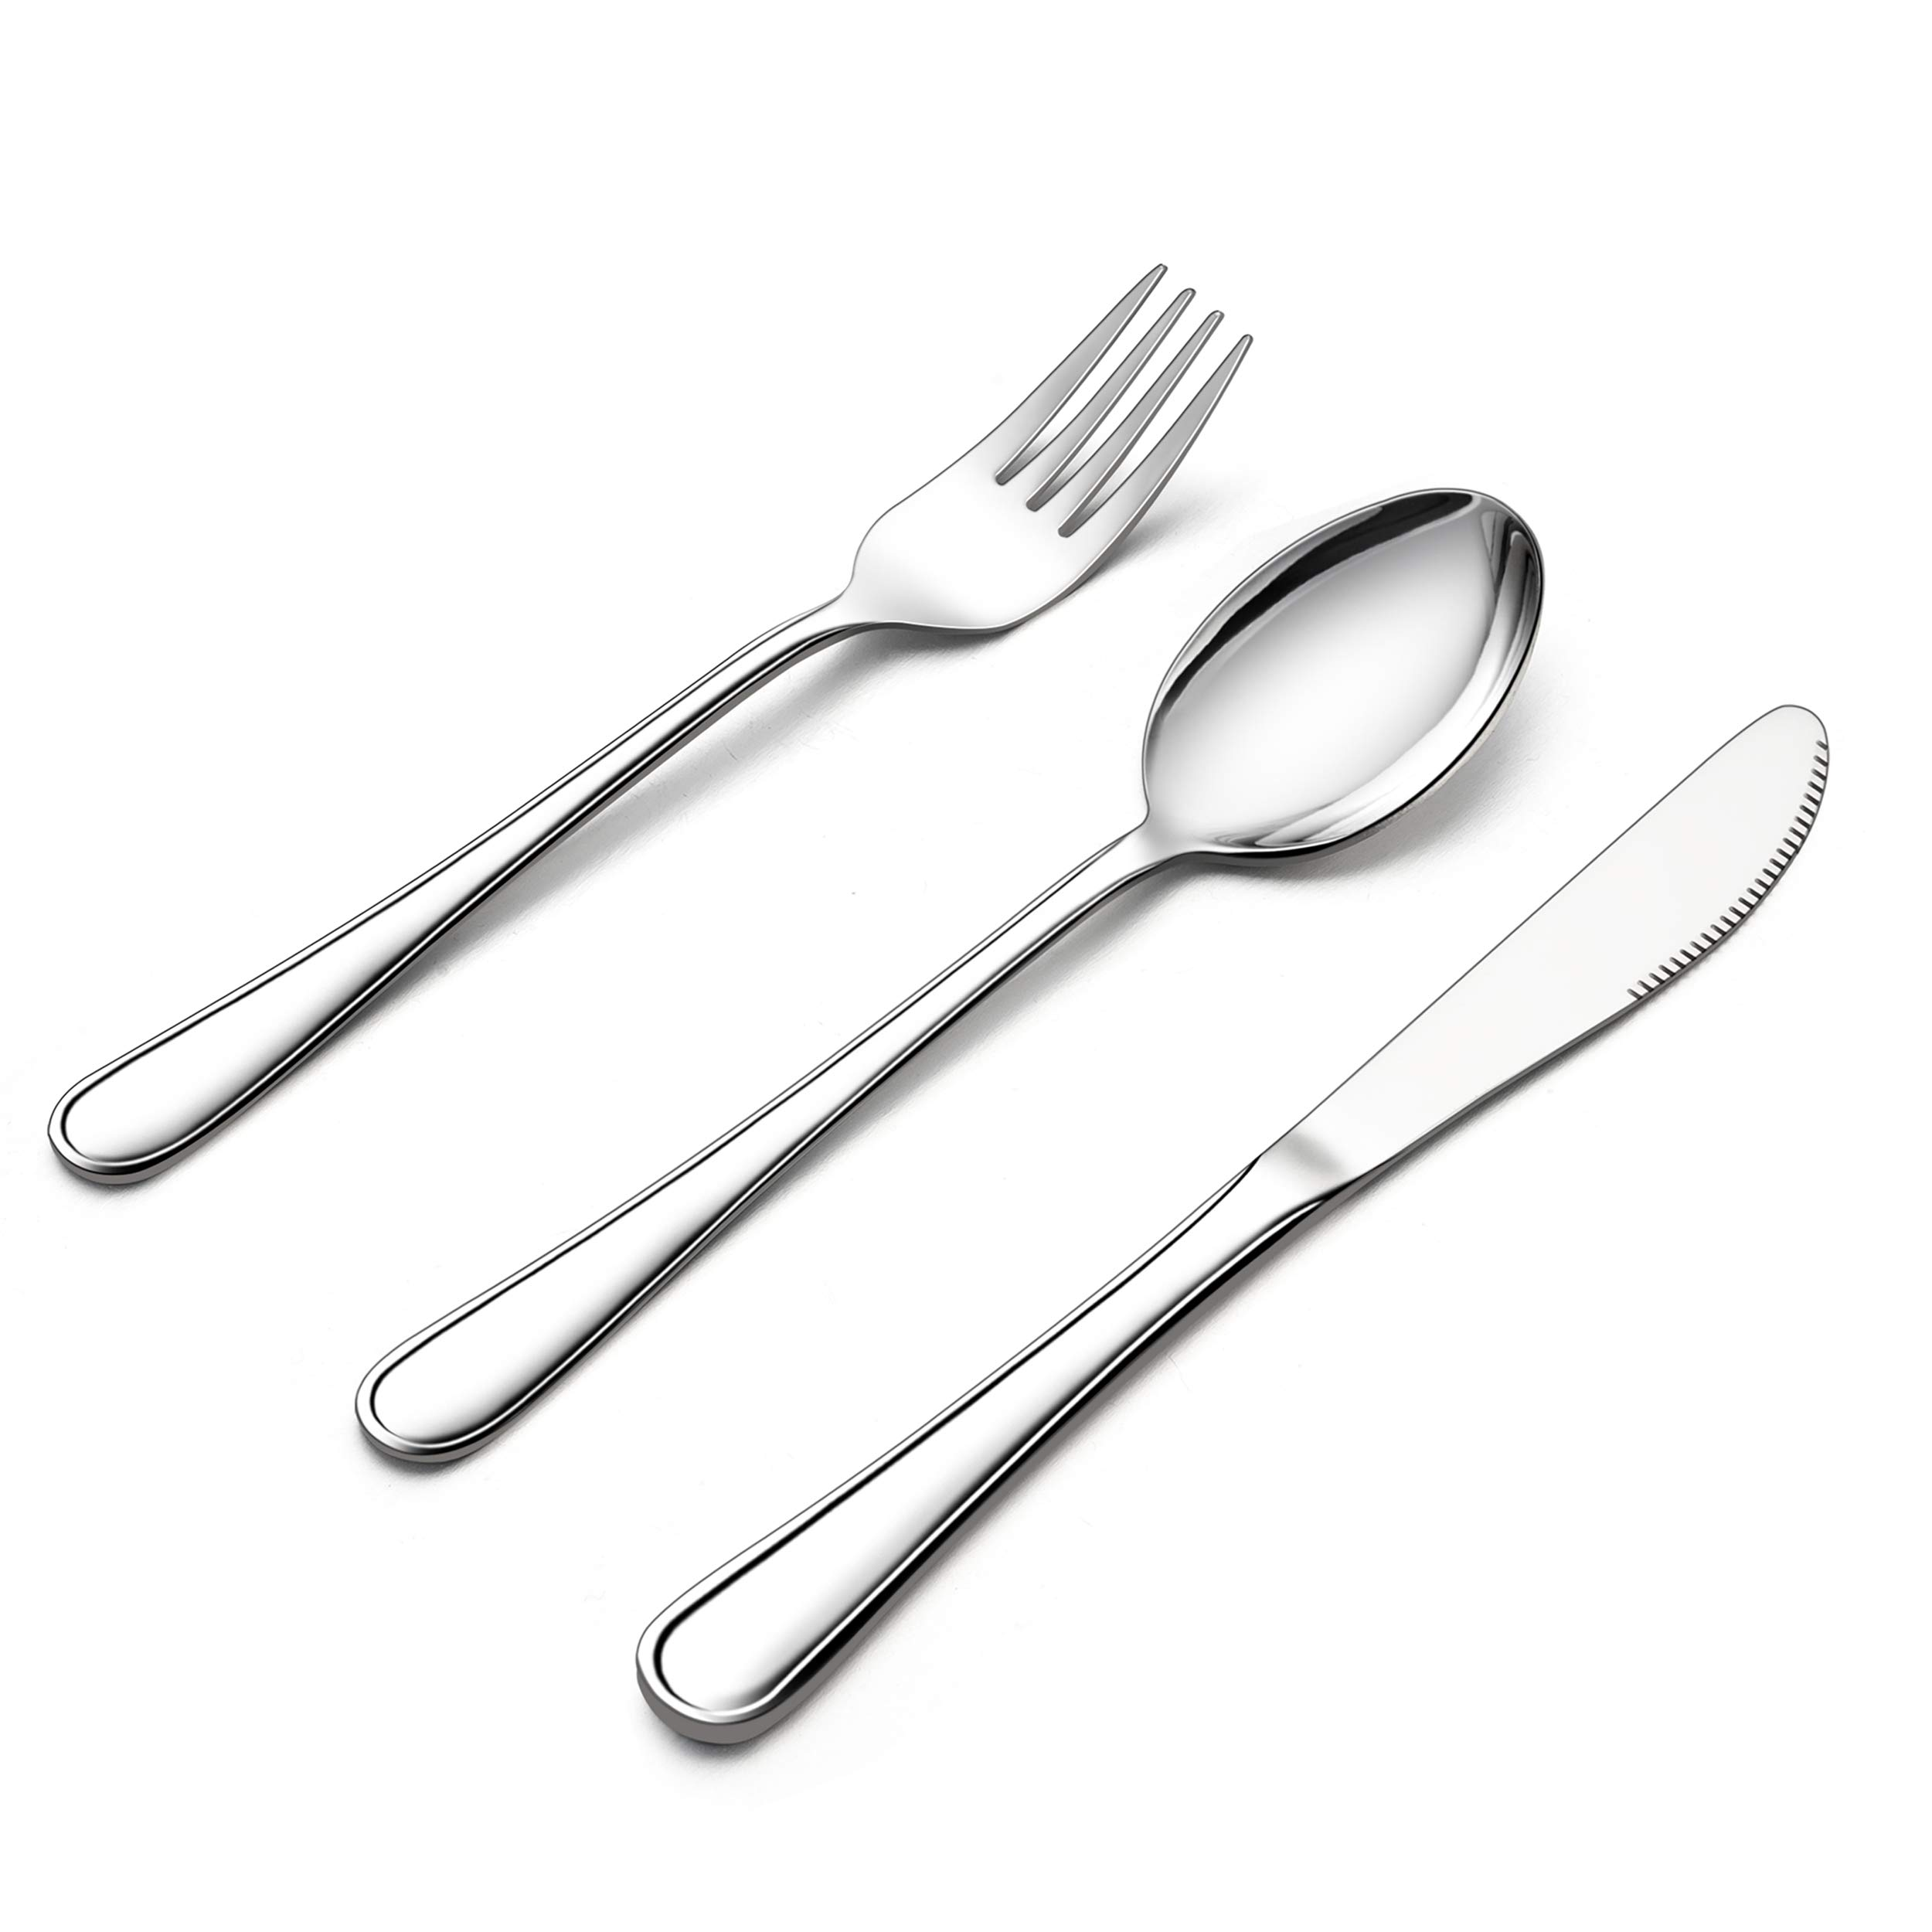 LIANYU 12-Piece Kids Silverware Set, Stainless Steel Toddler Utensils Flatware Set, Child Cutlery Tableware Set for 4, Include Knife/Fork/Spoon, Mirror Finished, Dishwasher Safe by LIANYU